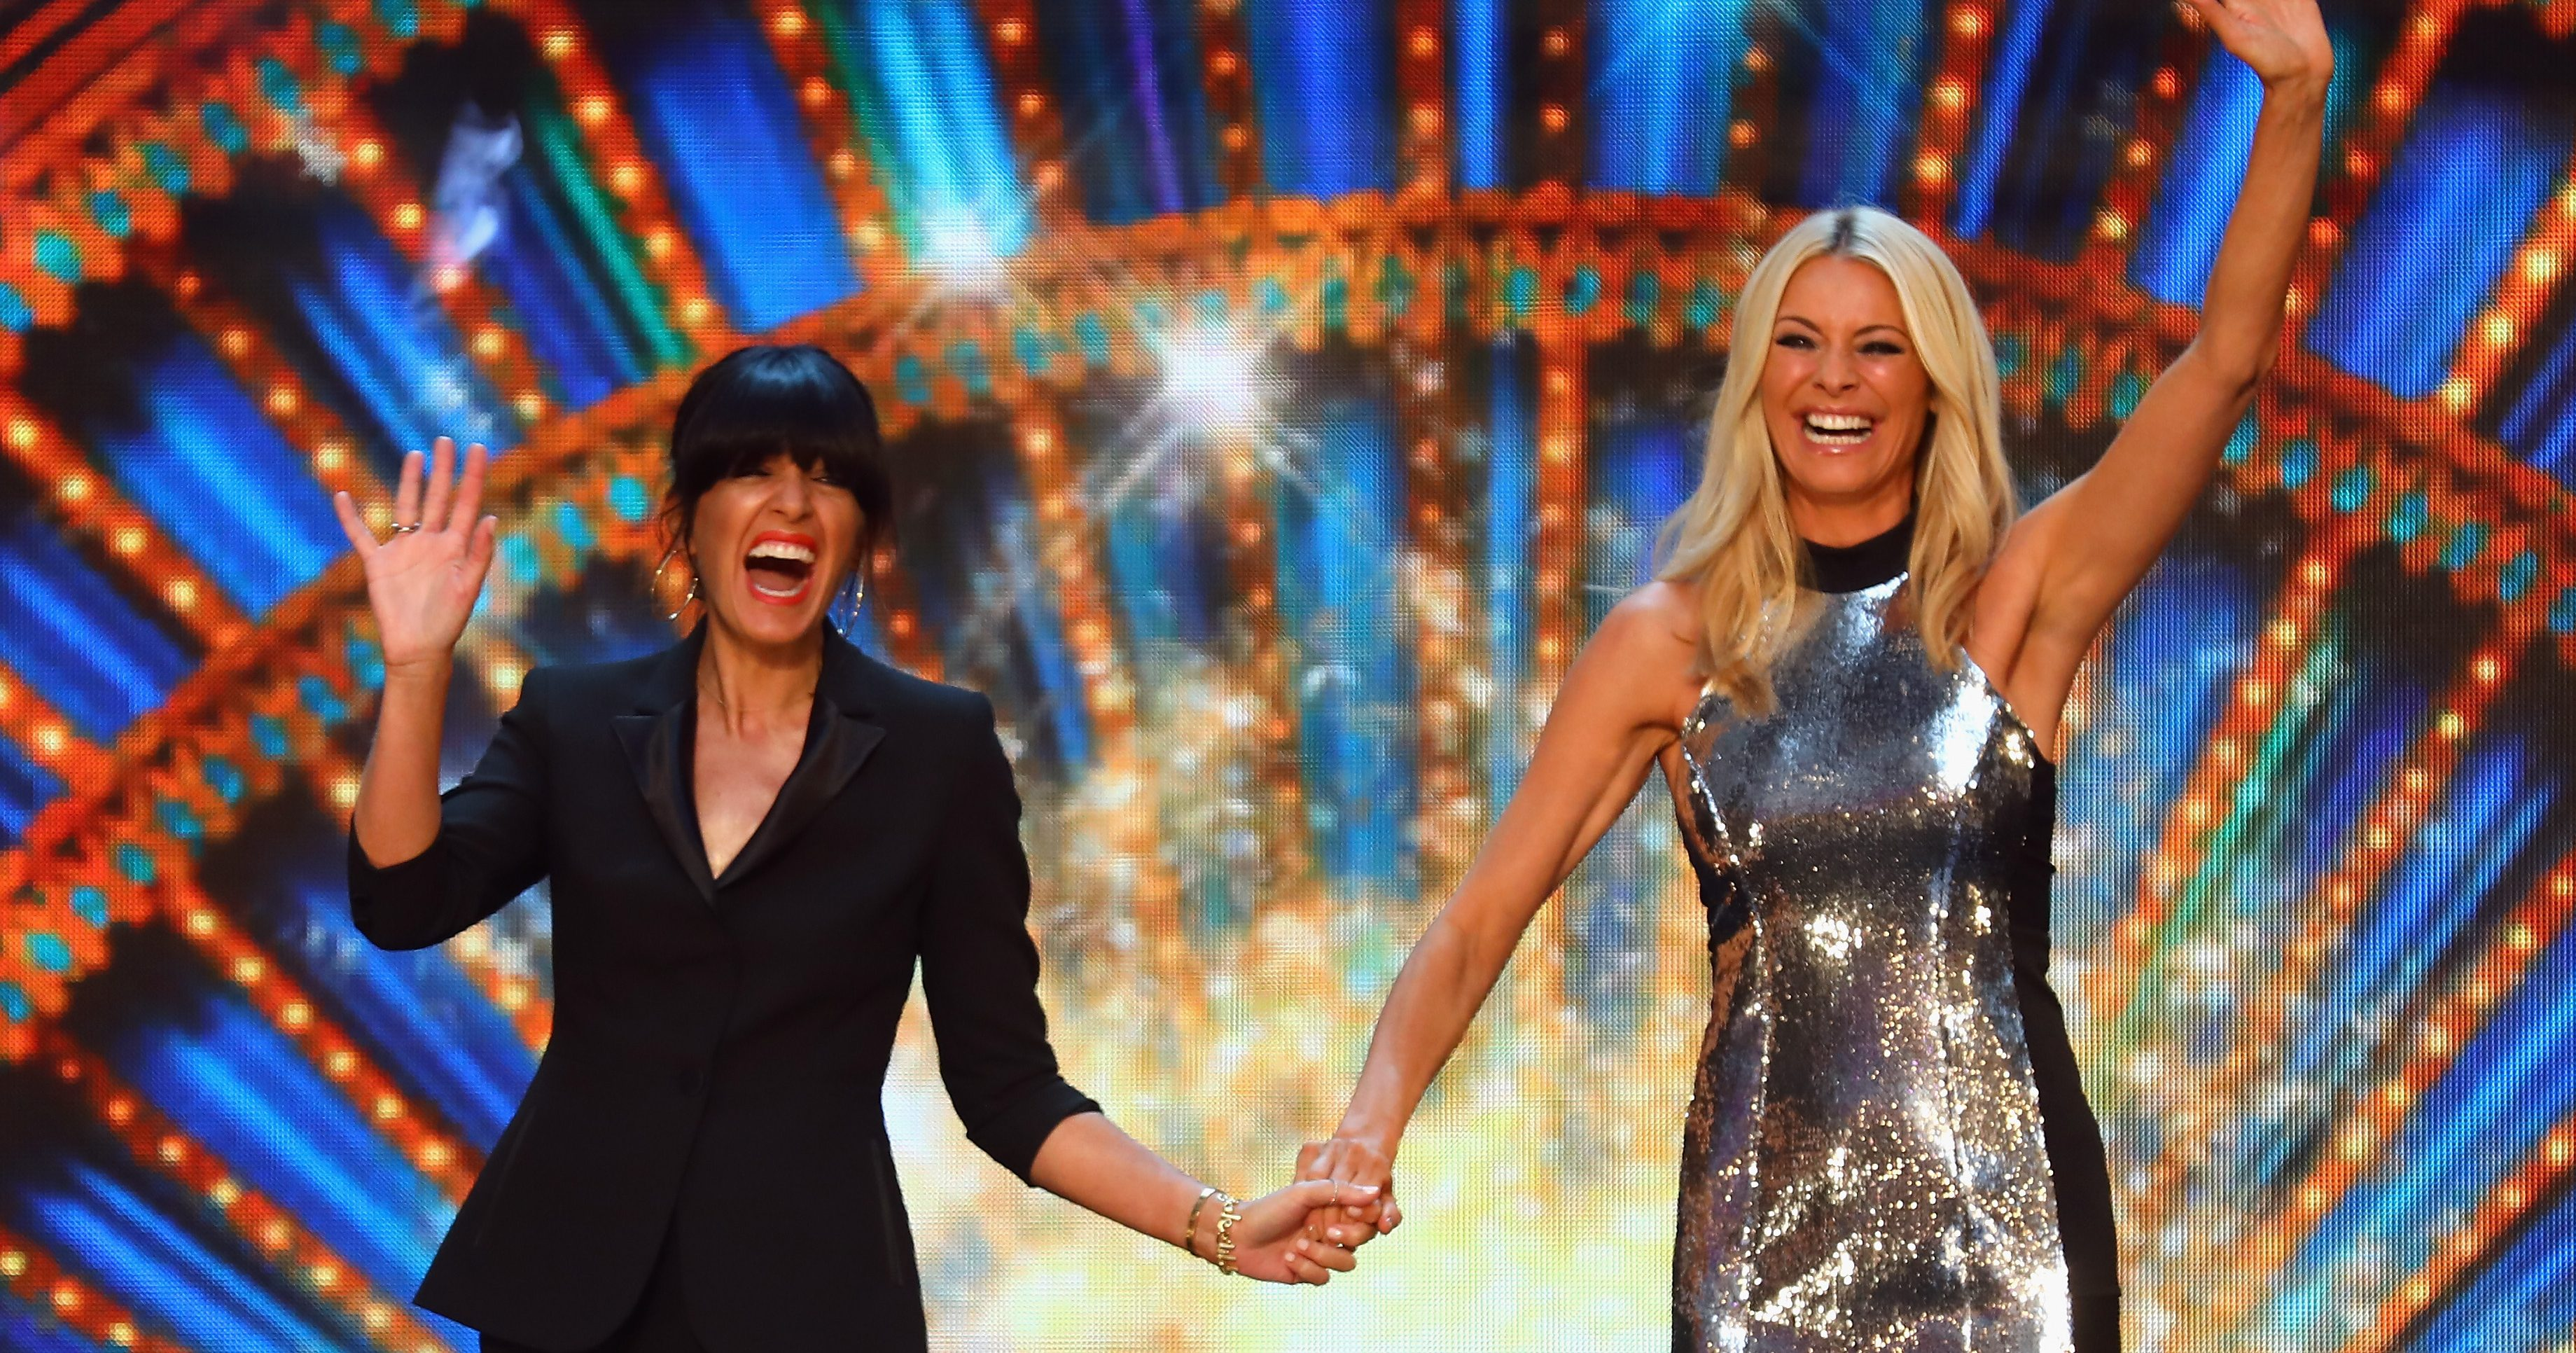 Claudia Winkleman and Tess Daly to dance for 24 hours straight and frankly we're already sweaty